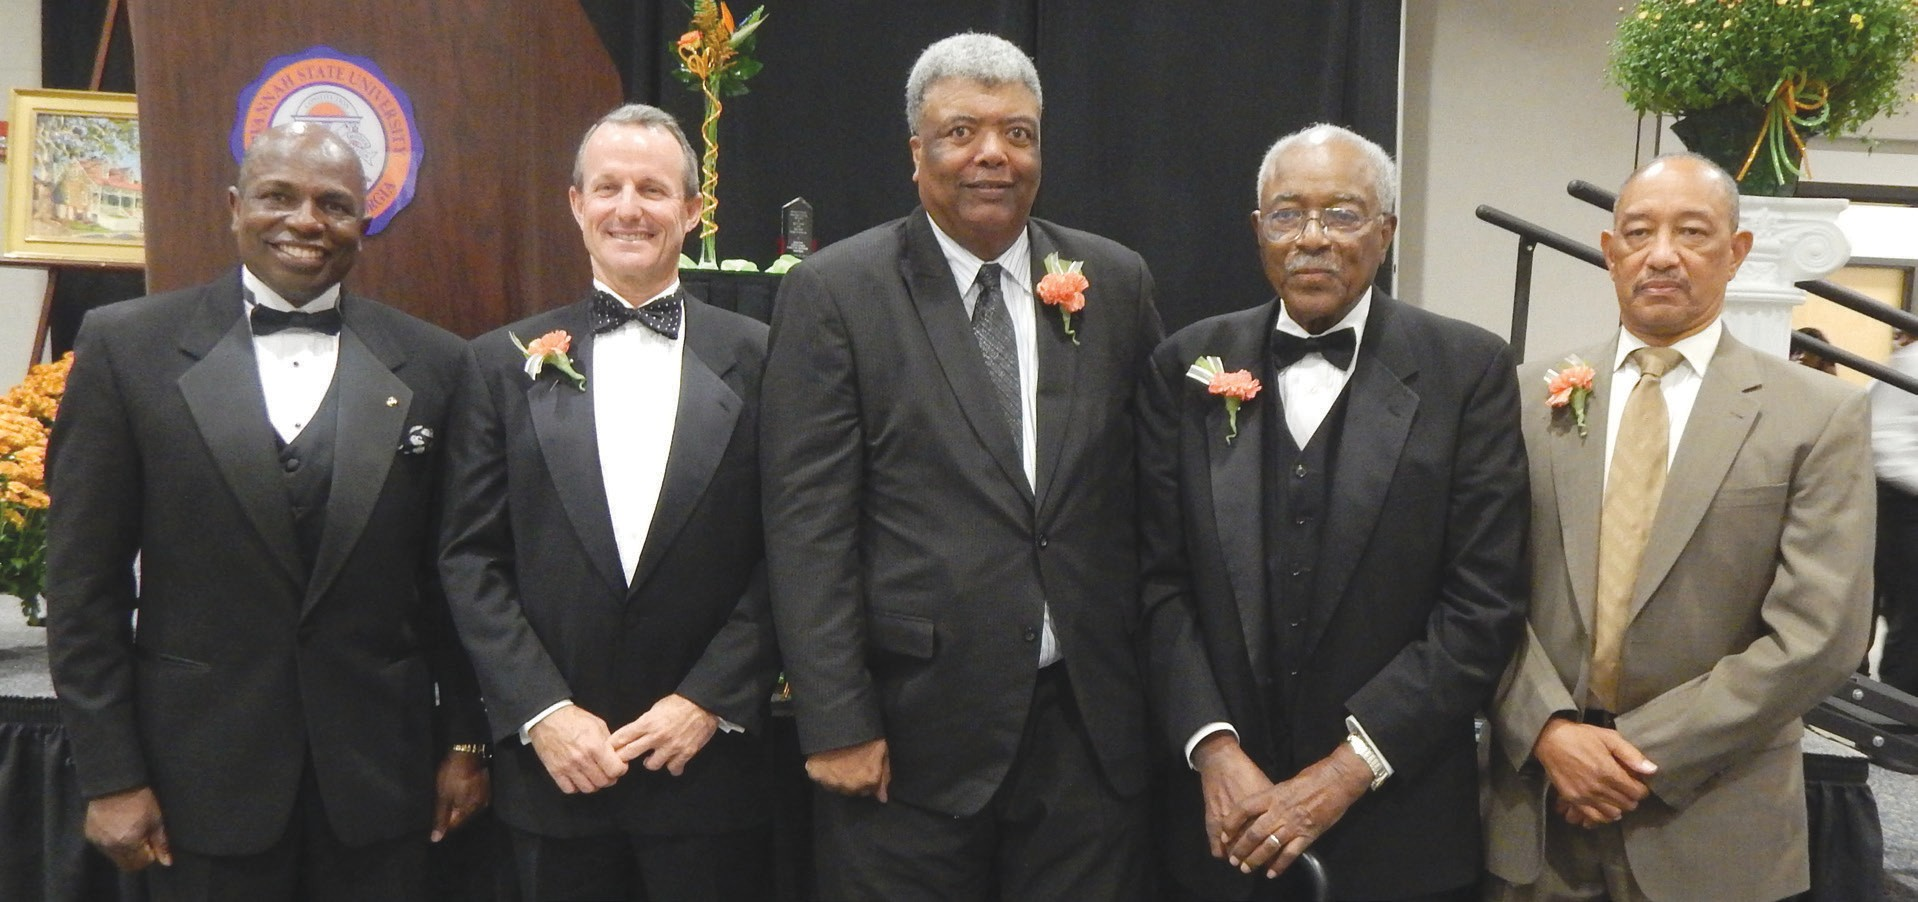 (L-R)The 2014 recipients are: Lt. General (Retired) Walter E. Gaskin, W. W. Law Legacy Award;Rob Gibson, King-Tisdell Cottage Arts Award; Col. George Bowen, Rev. James M. Simms Public Service Award; Walter B. Simmons, Beach Institute Education Award; Dr. Phillip Cooper accepted the Leopold Adler, II Historic Preservation Award for his mother Agatha Cooper, (Posthumous)